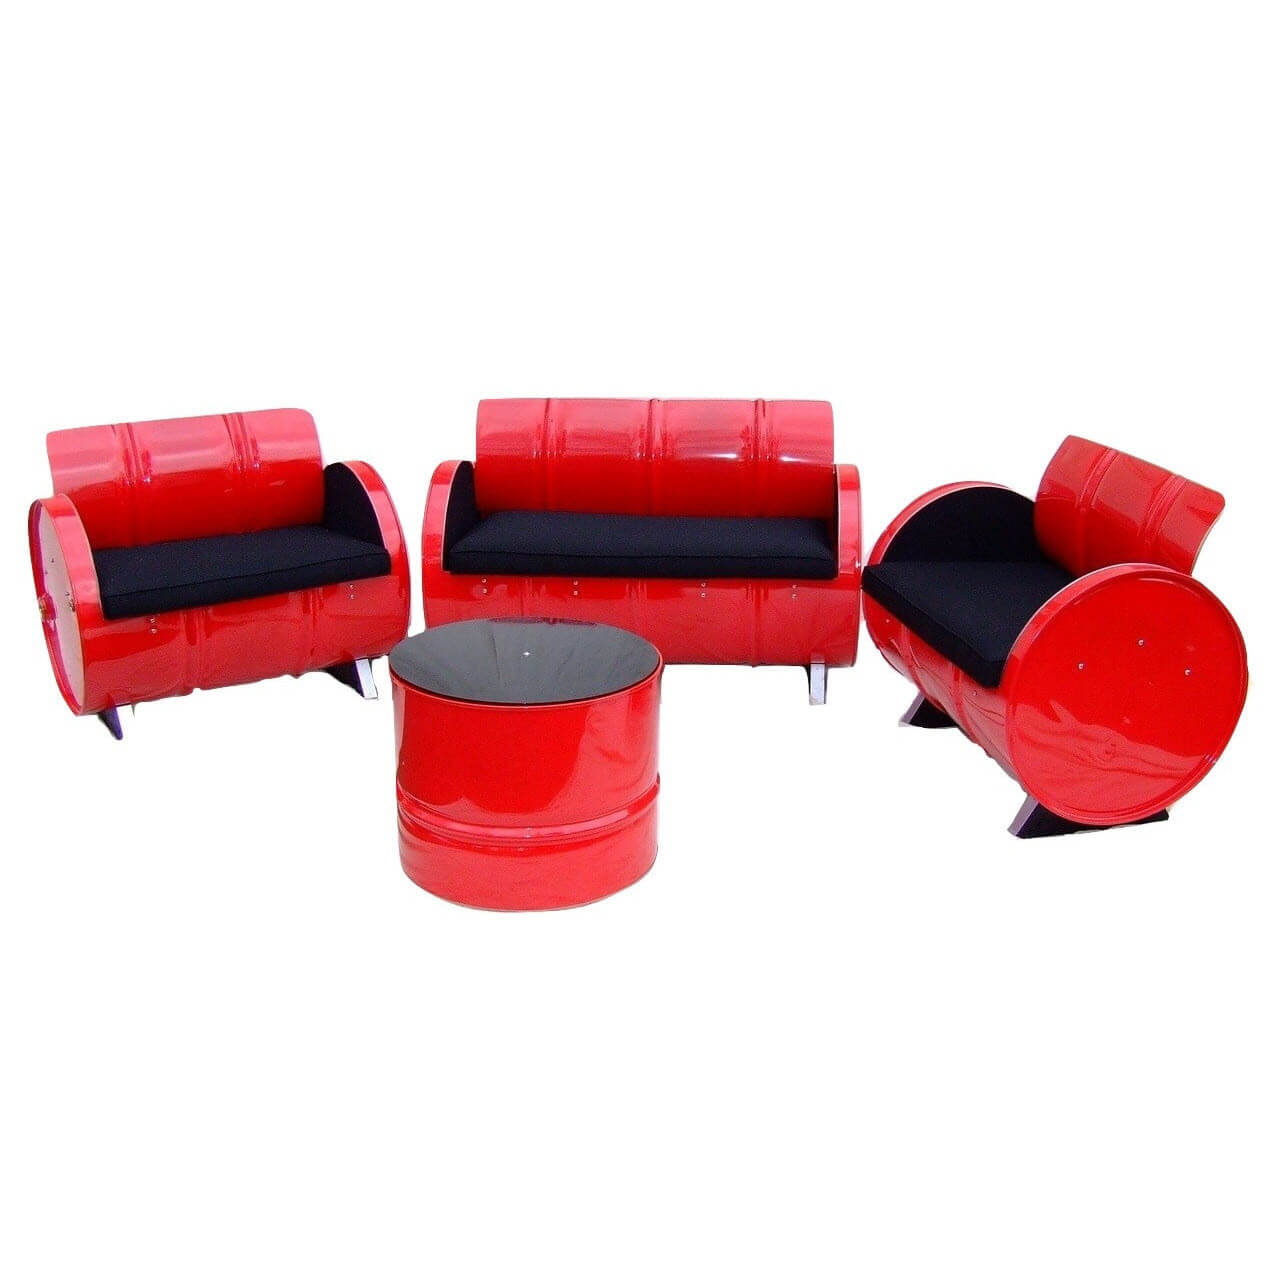 Drum Barrel Furniture Set